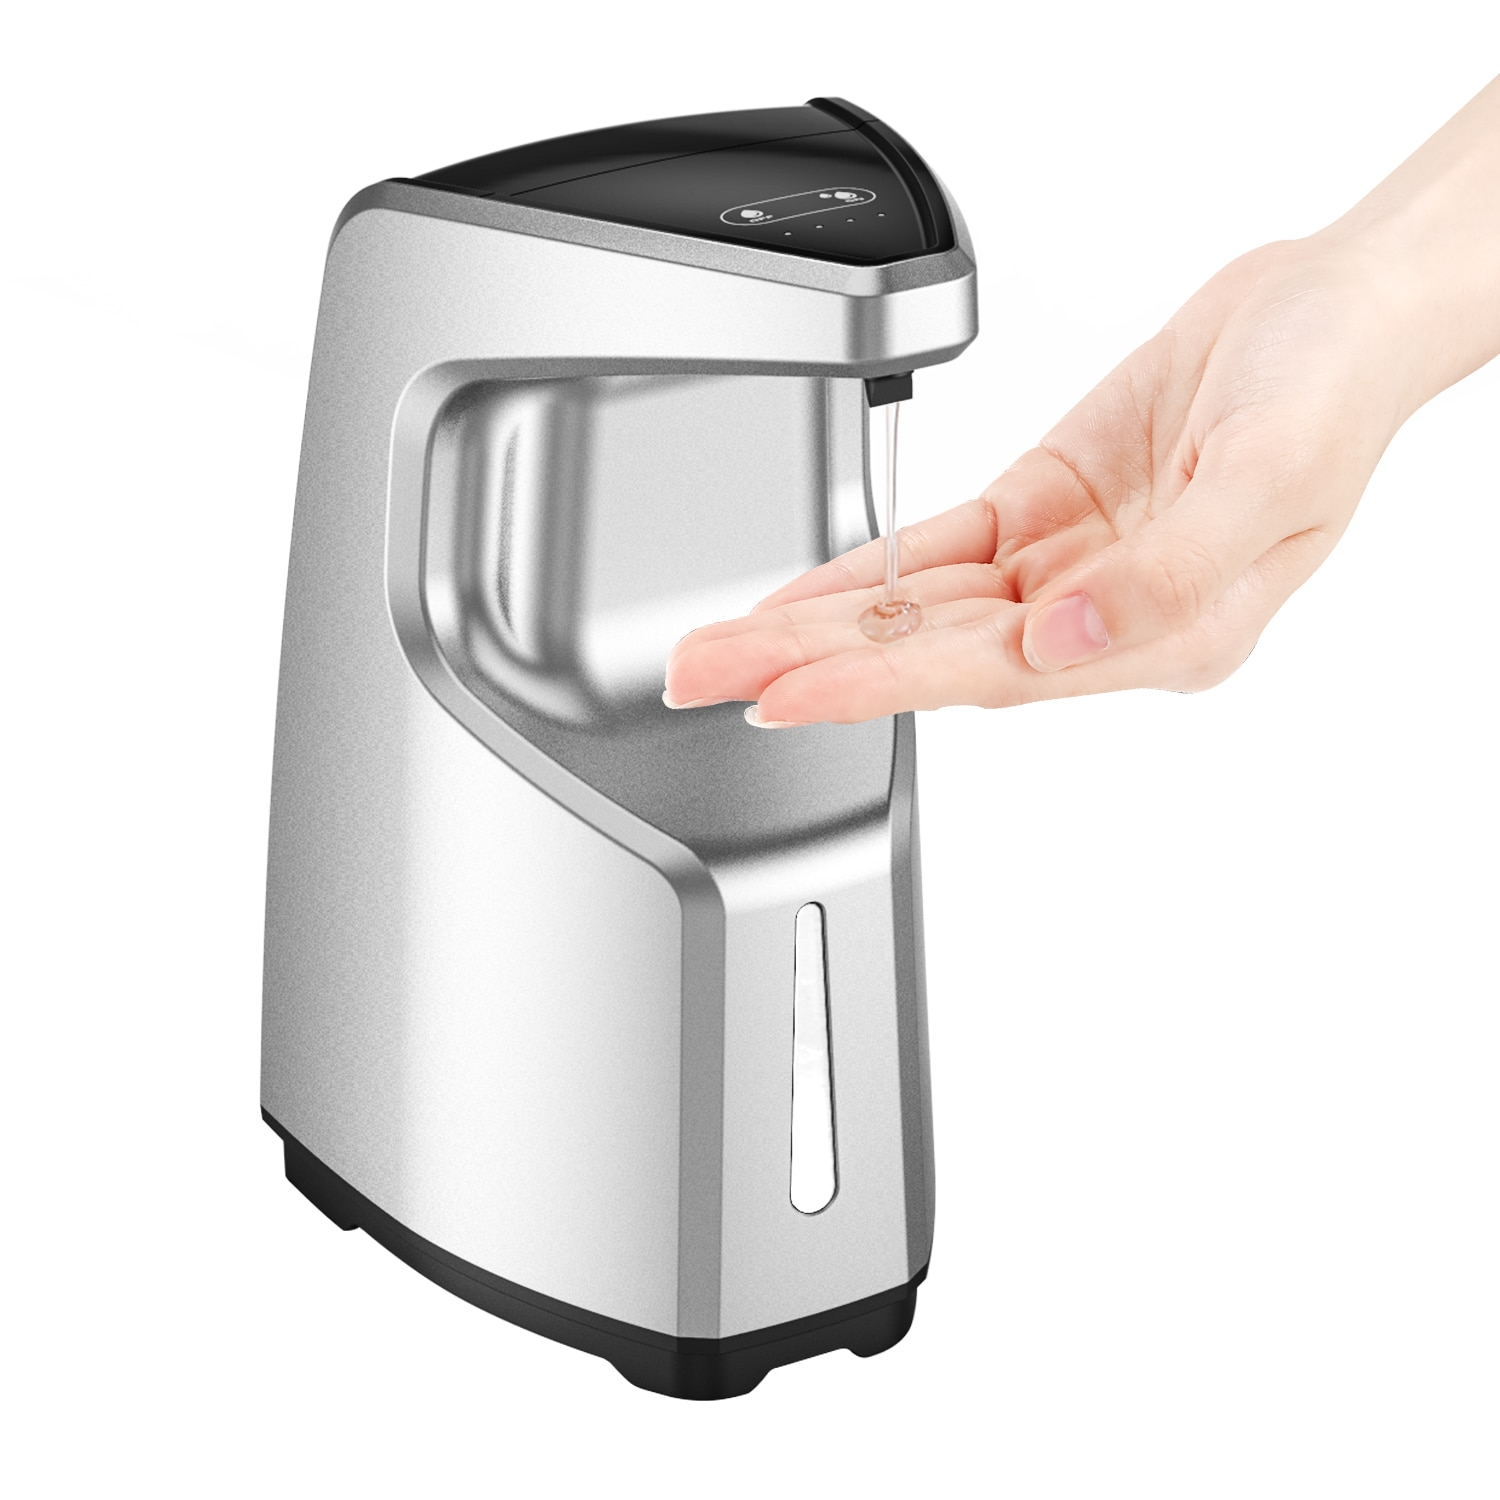 PUPWONG Liquid Soap Dispenser 450ml Automatic Intelligent Touchless Sensor Hand Sanitizer Dispenser